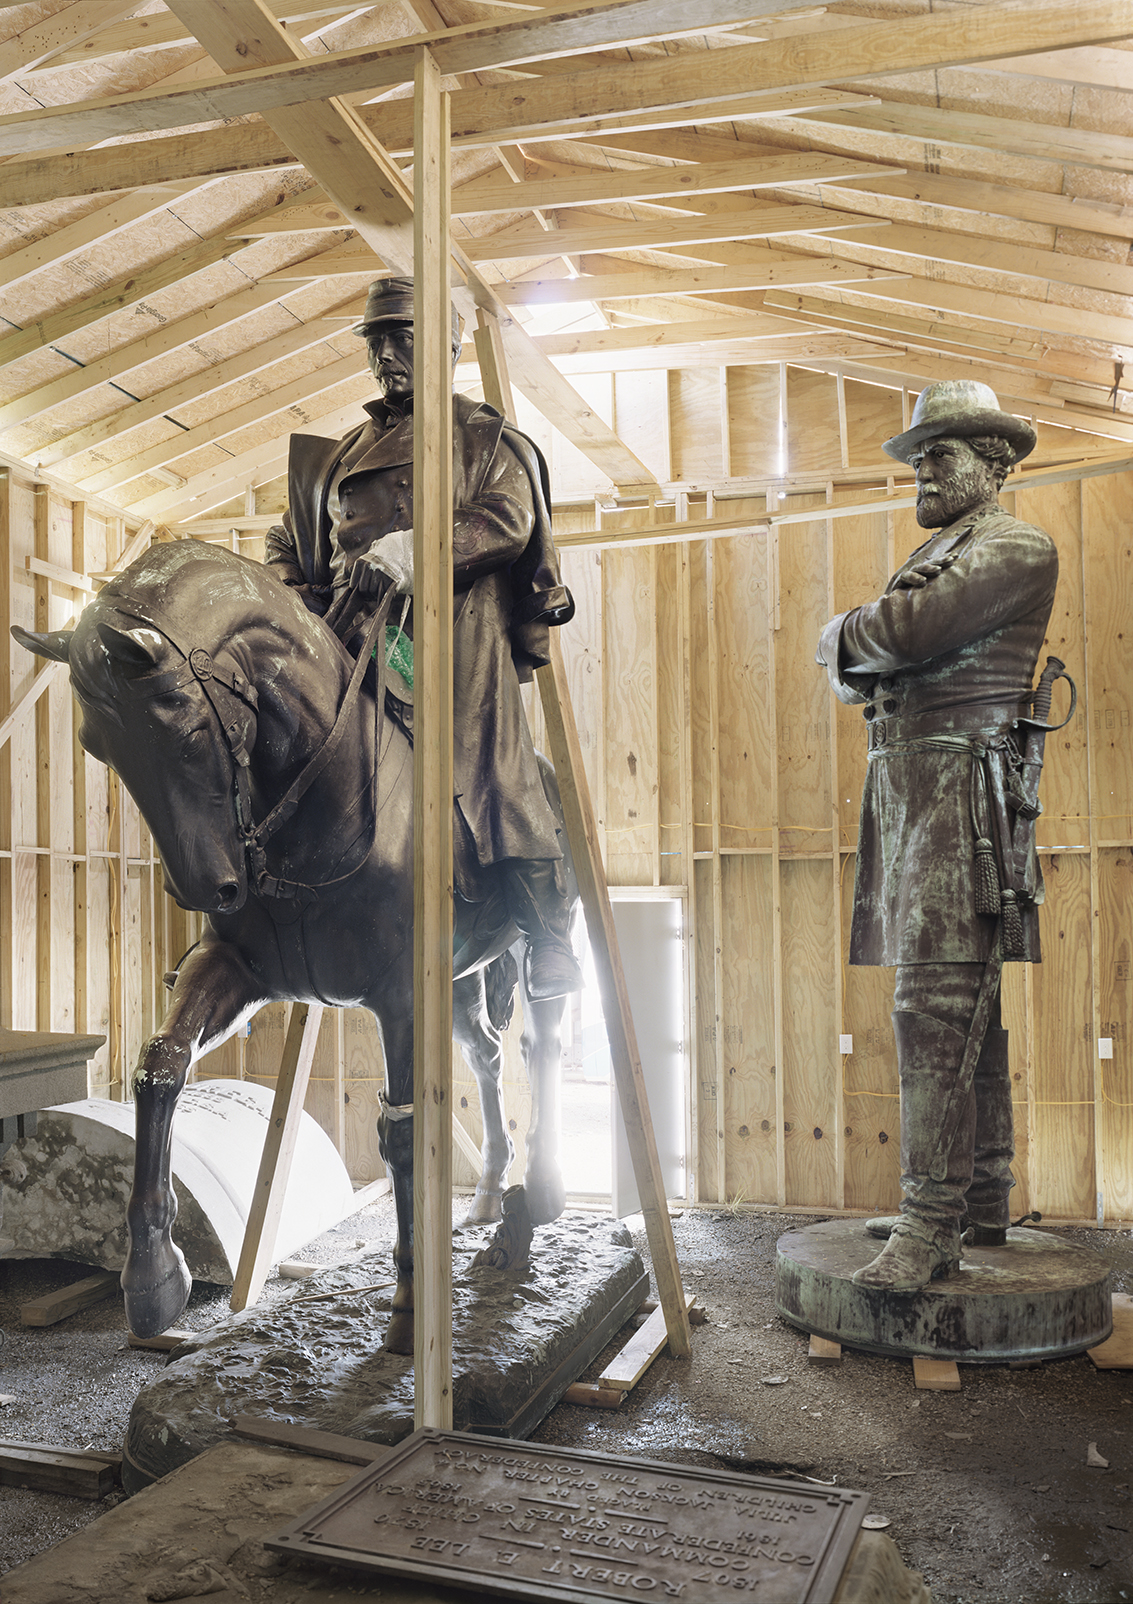 A wooden structure encloses two bronze monuments of Civil War figures